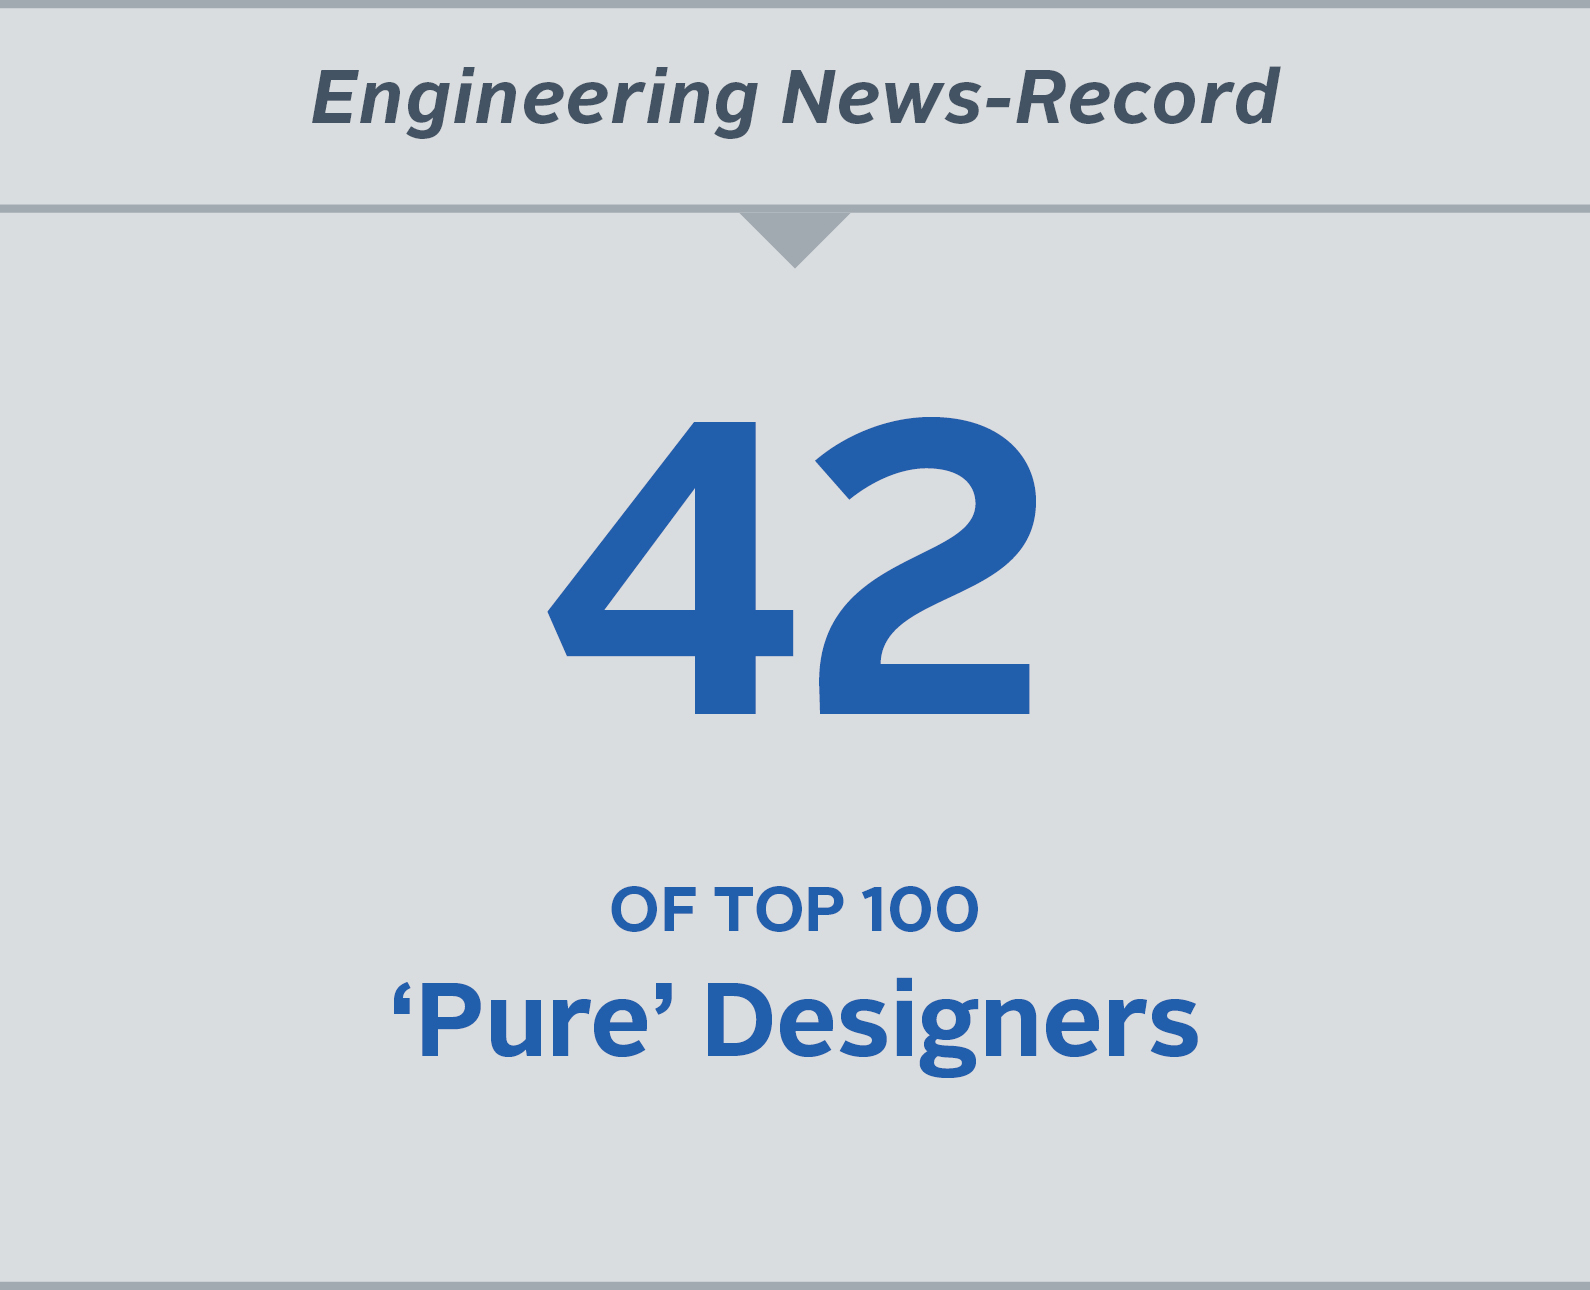 Number 42 of top 100 'Pure' Designers.